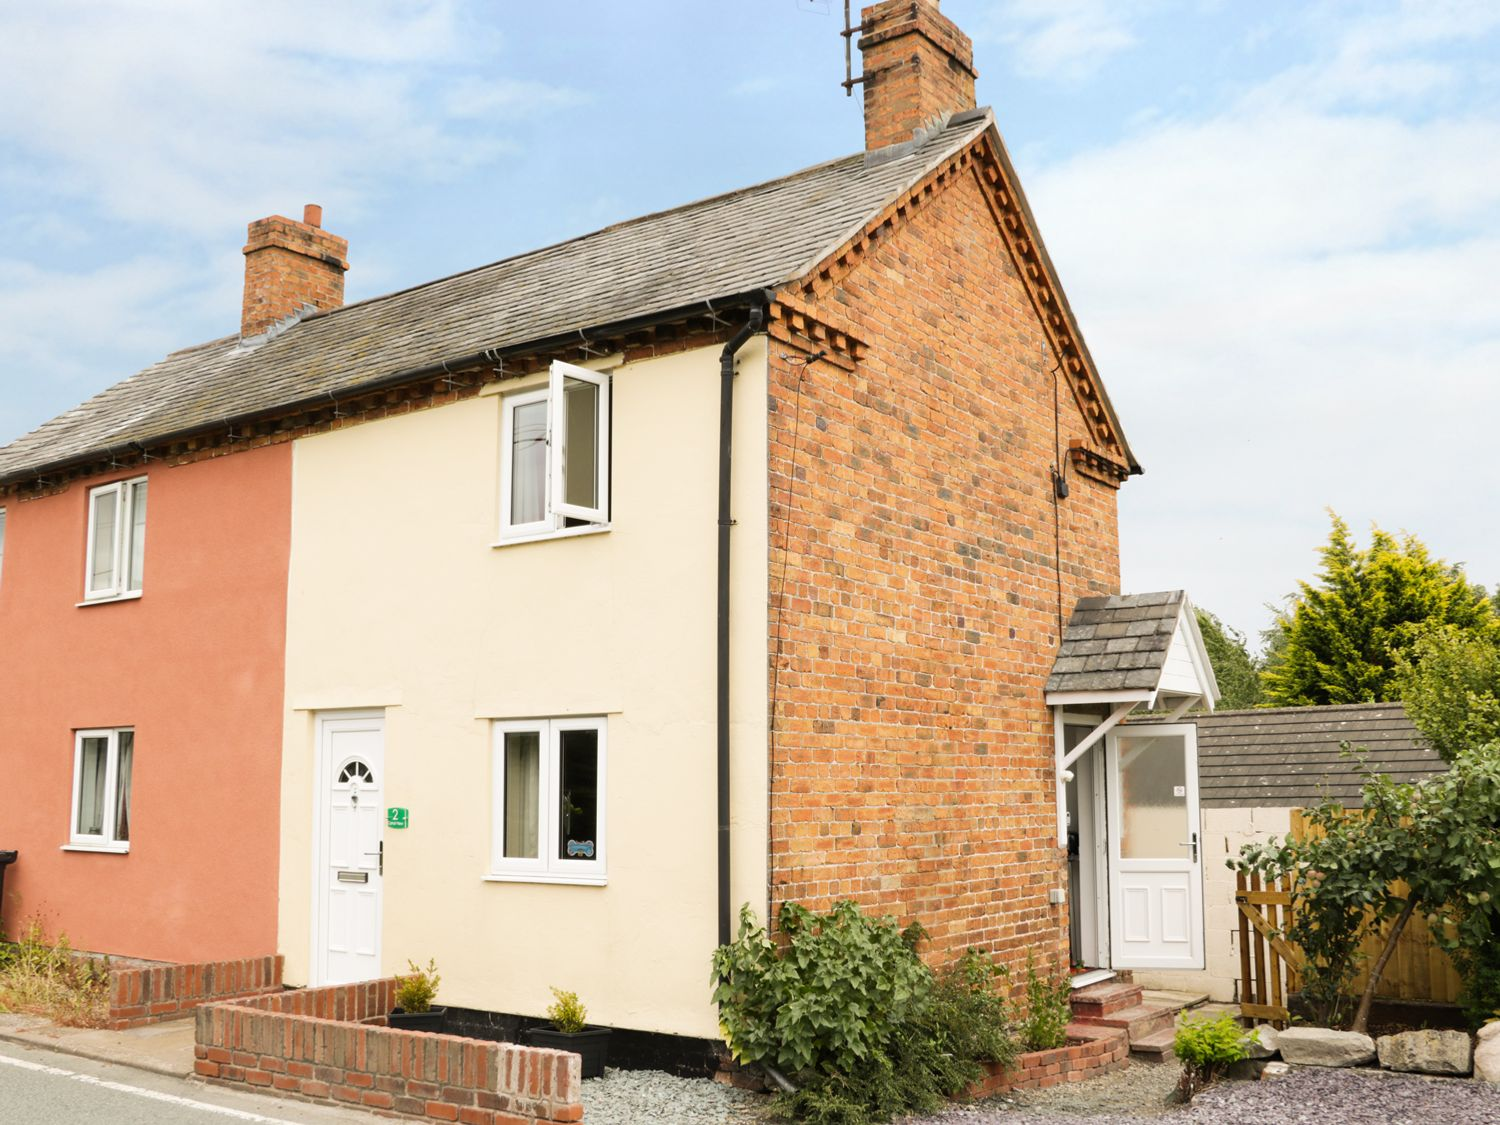 2 Canal View - Mid Wales - 987317 - photo 1